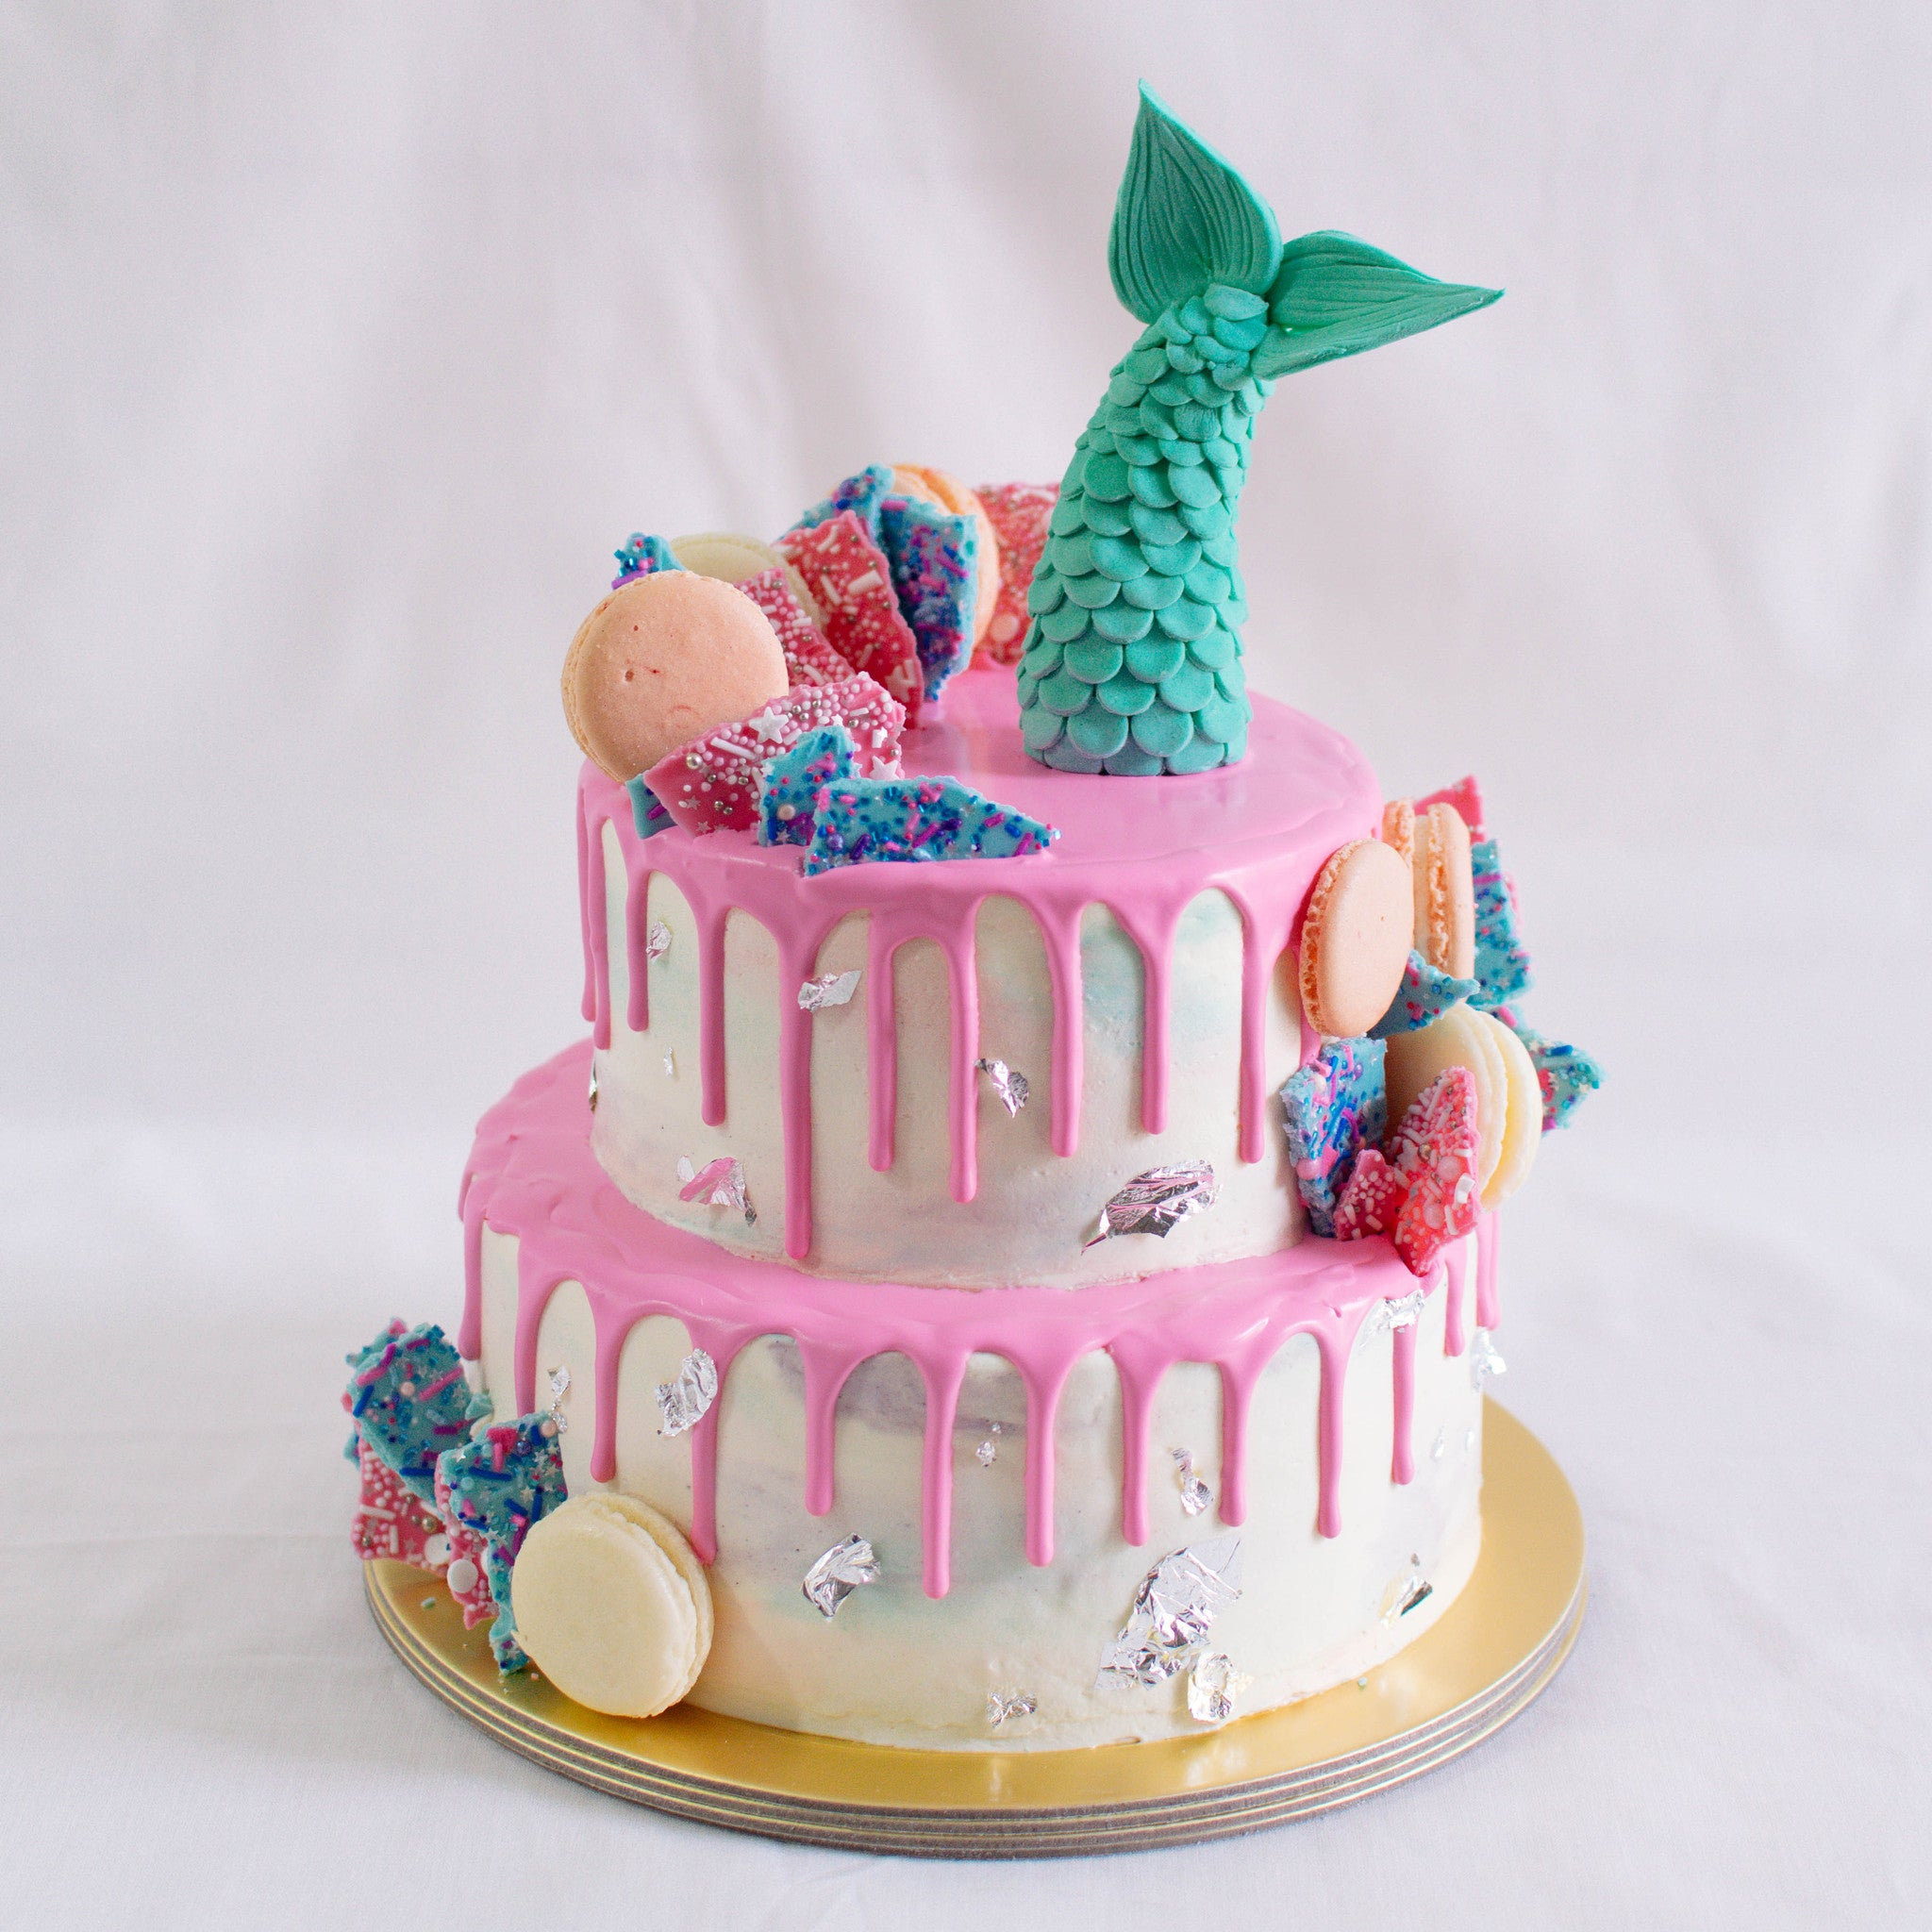 Mermaid Tail Fondant Topper - Custom Bakes by Edith Patisserie